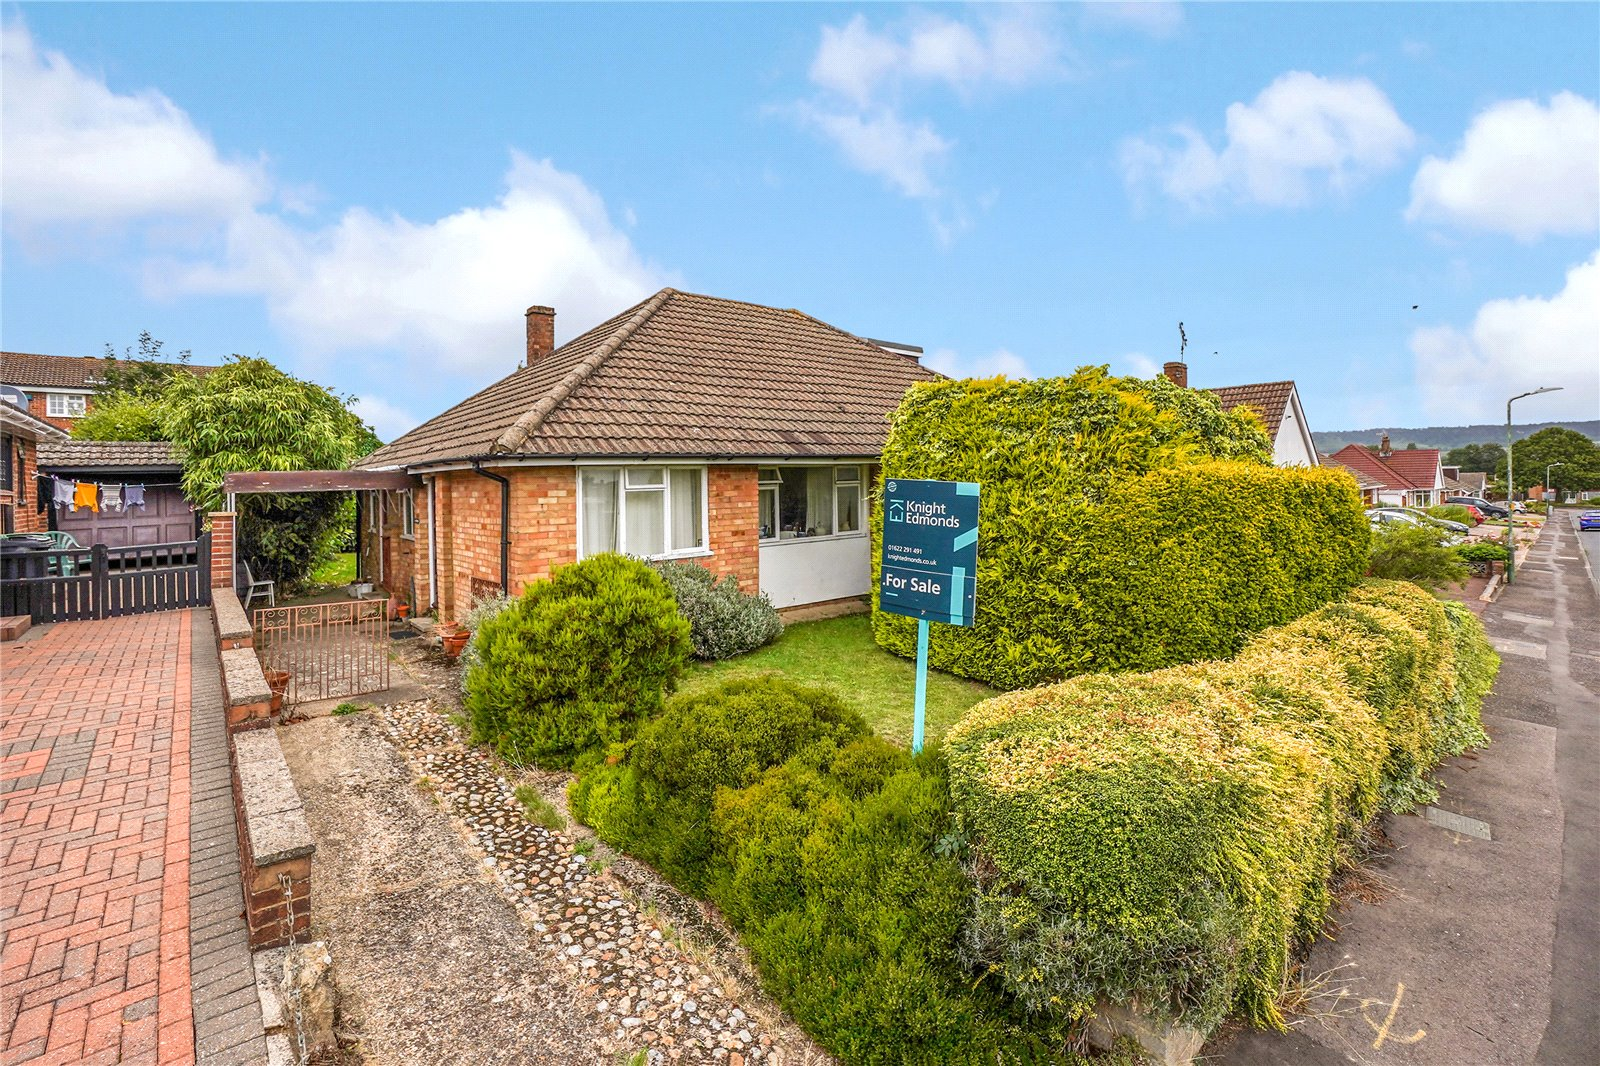 2 bed bungalow for sale in Tintern Road, Maidstone, ME16